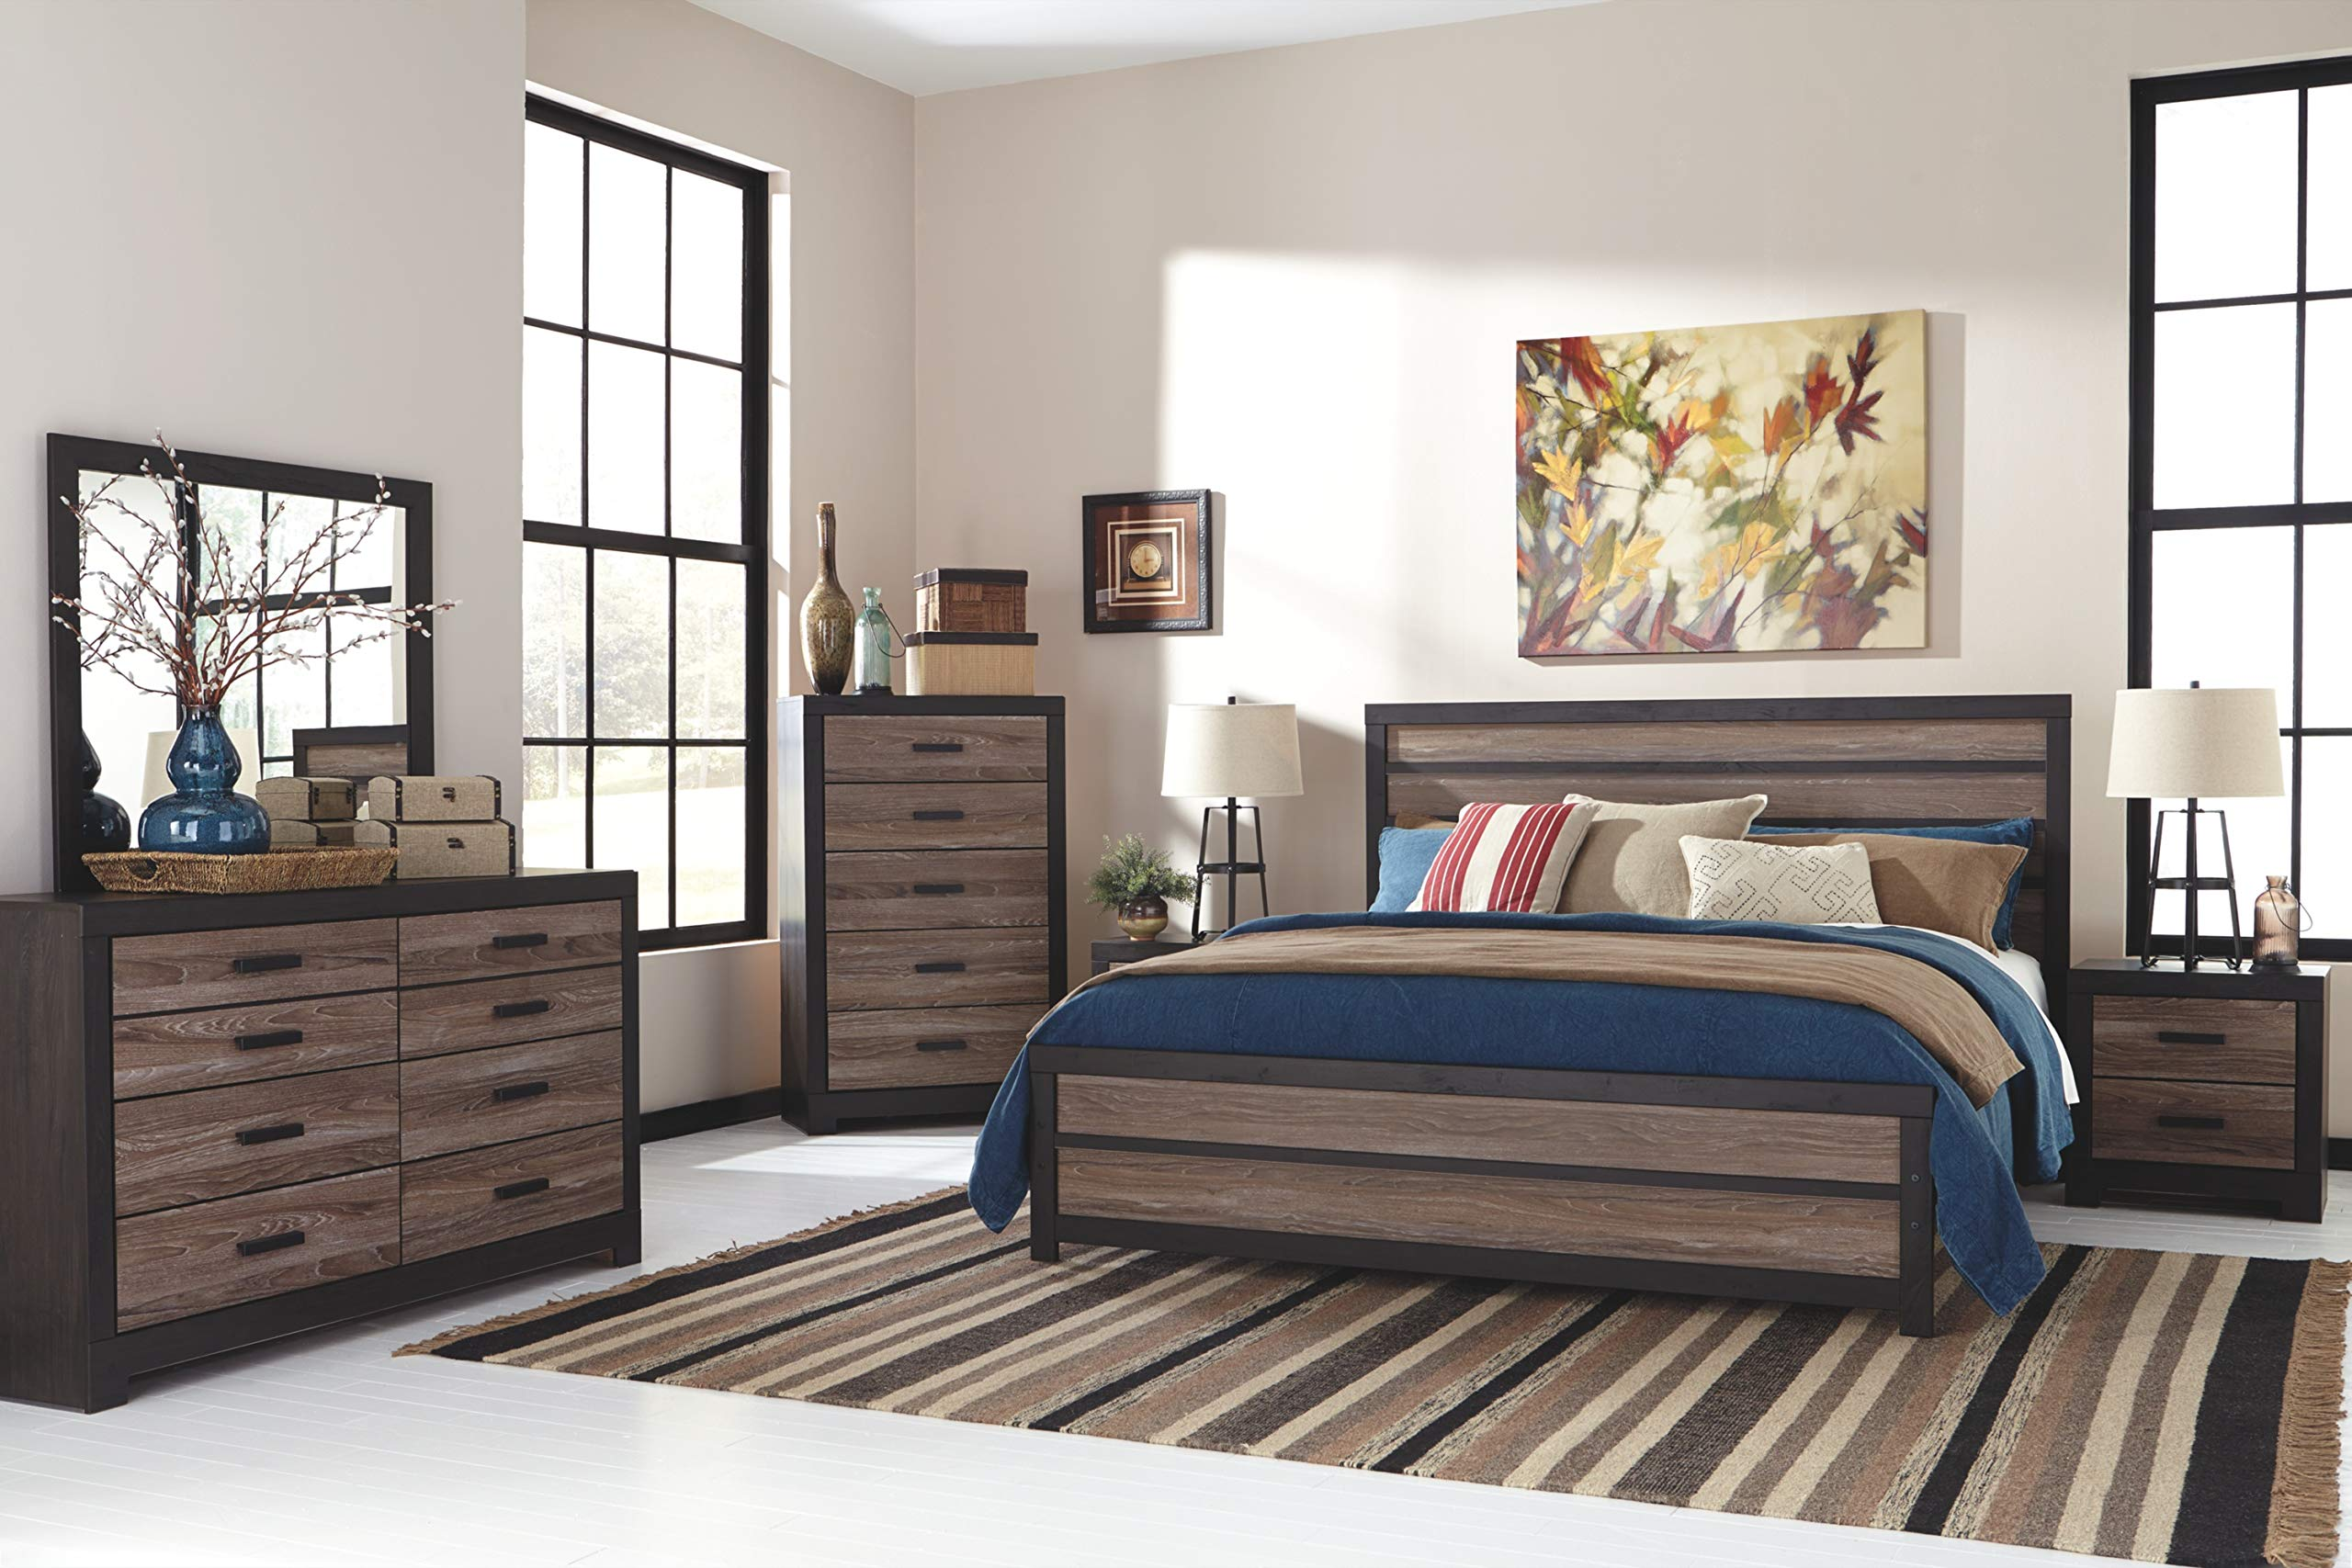 Ashley Furniture Signature Design - Harlinton Chest of Drawers - 5 Drawer Dresser - Contemporary Vintage - Warm Gray & Charcoal by Signature Design by Ashley (Image #8)